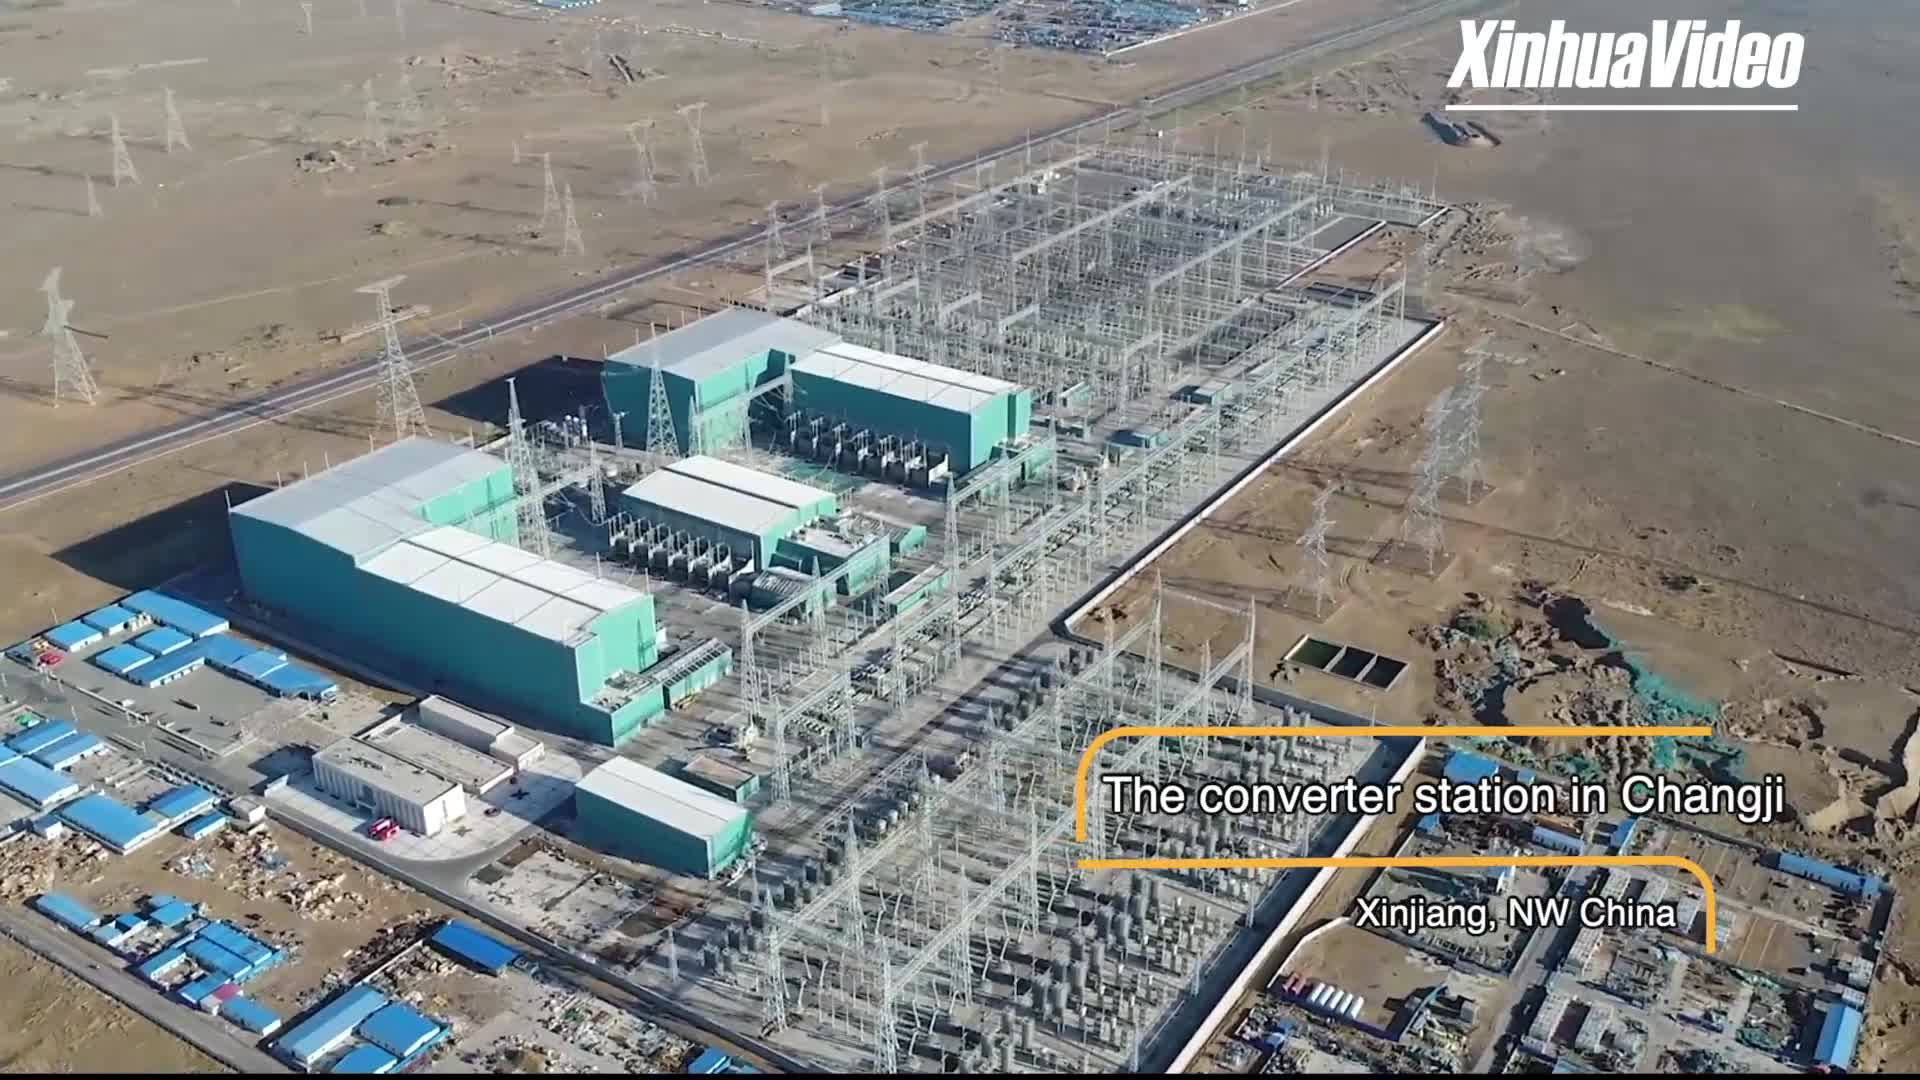 5G Tech Assists in Maintenance of Converter Station in Xinjiang